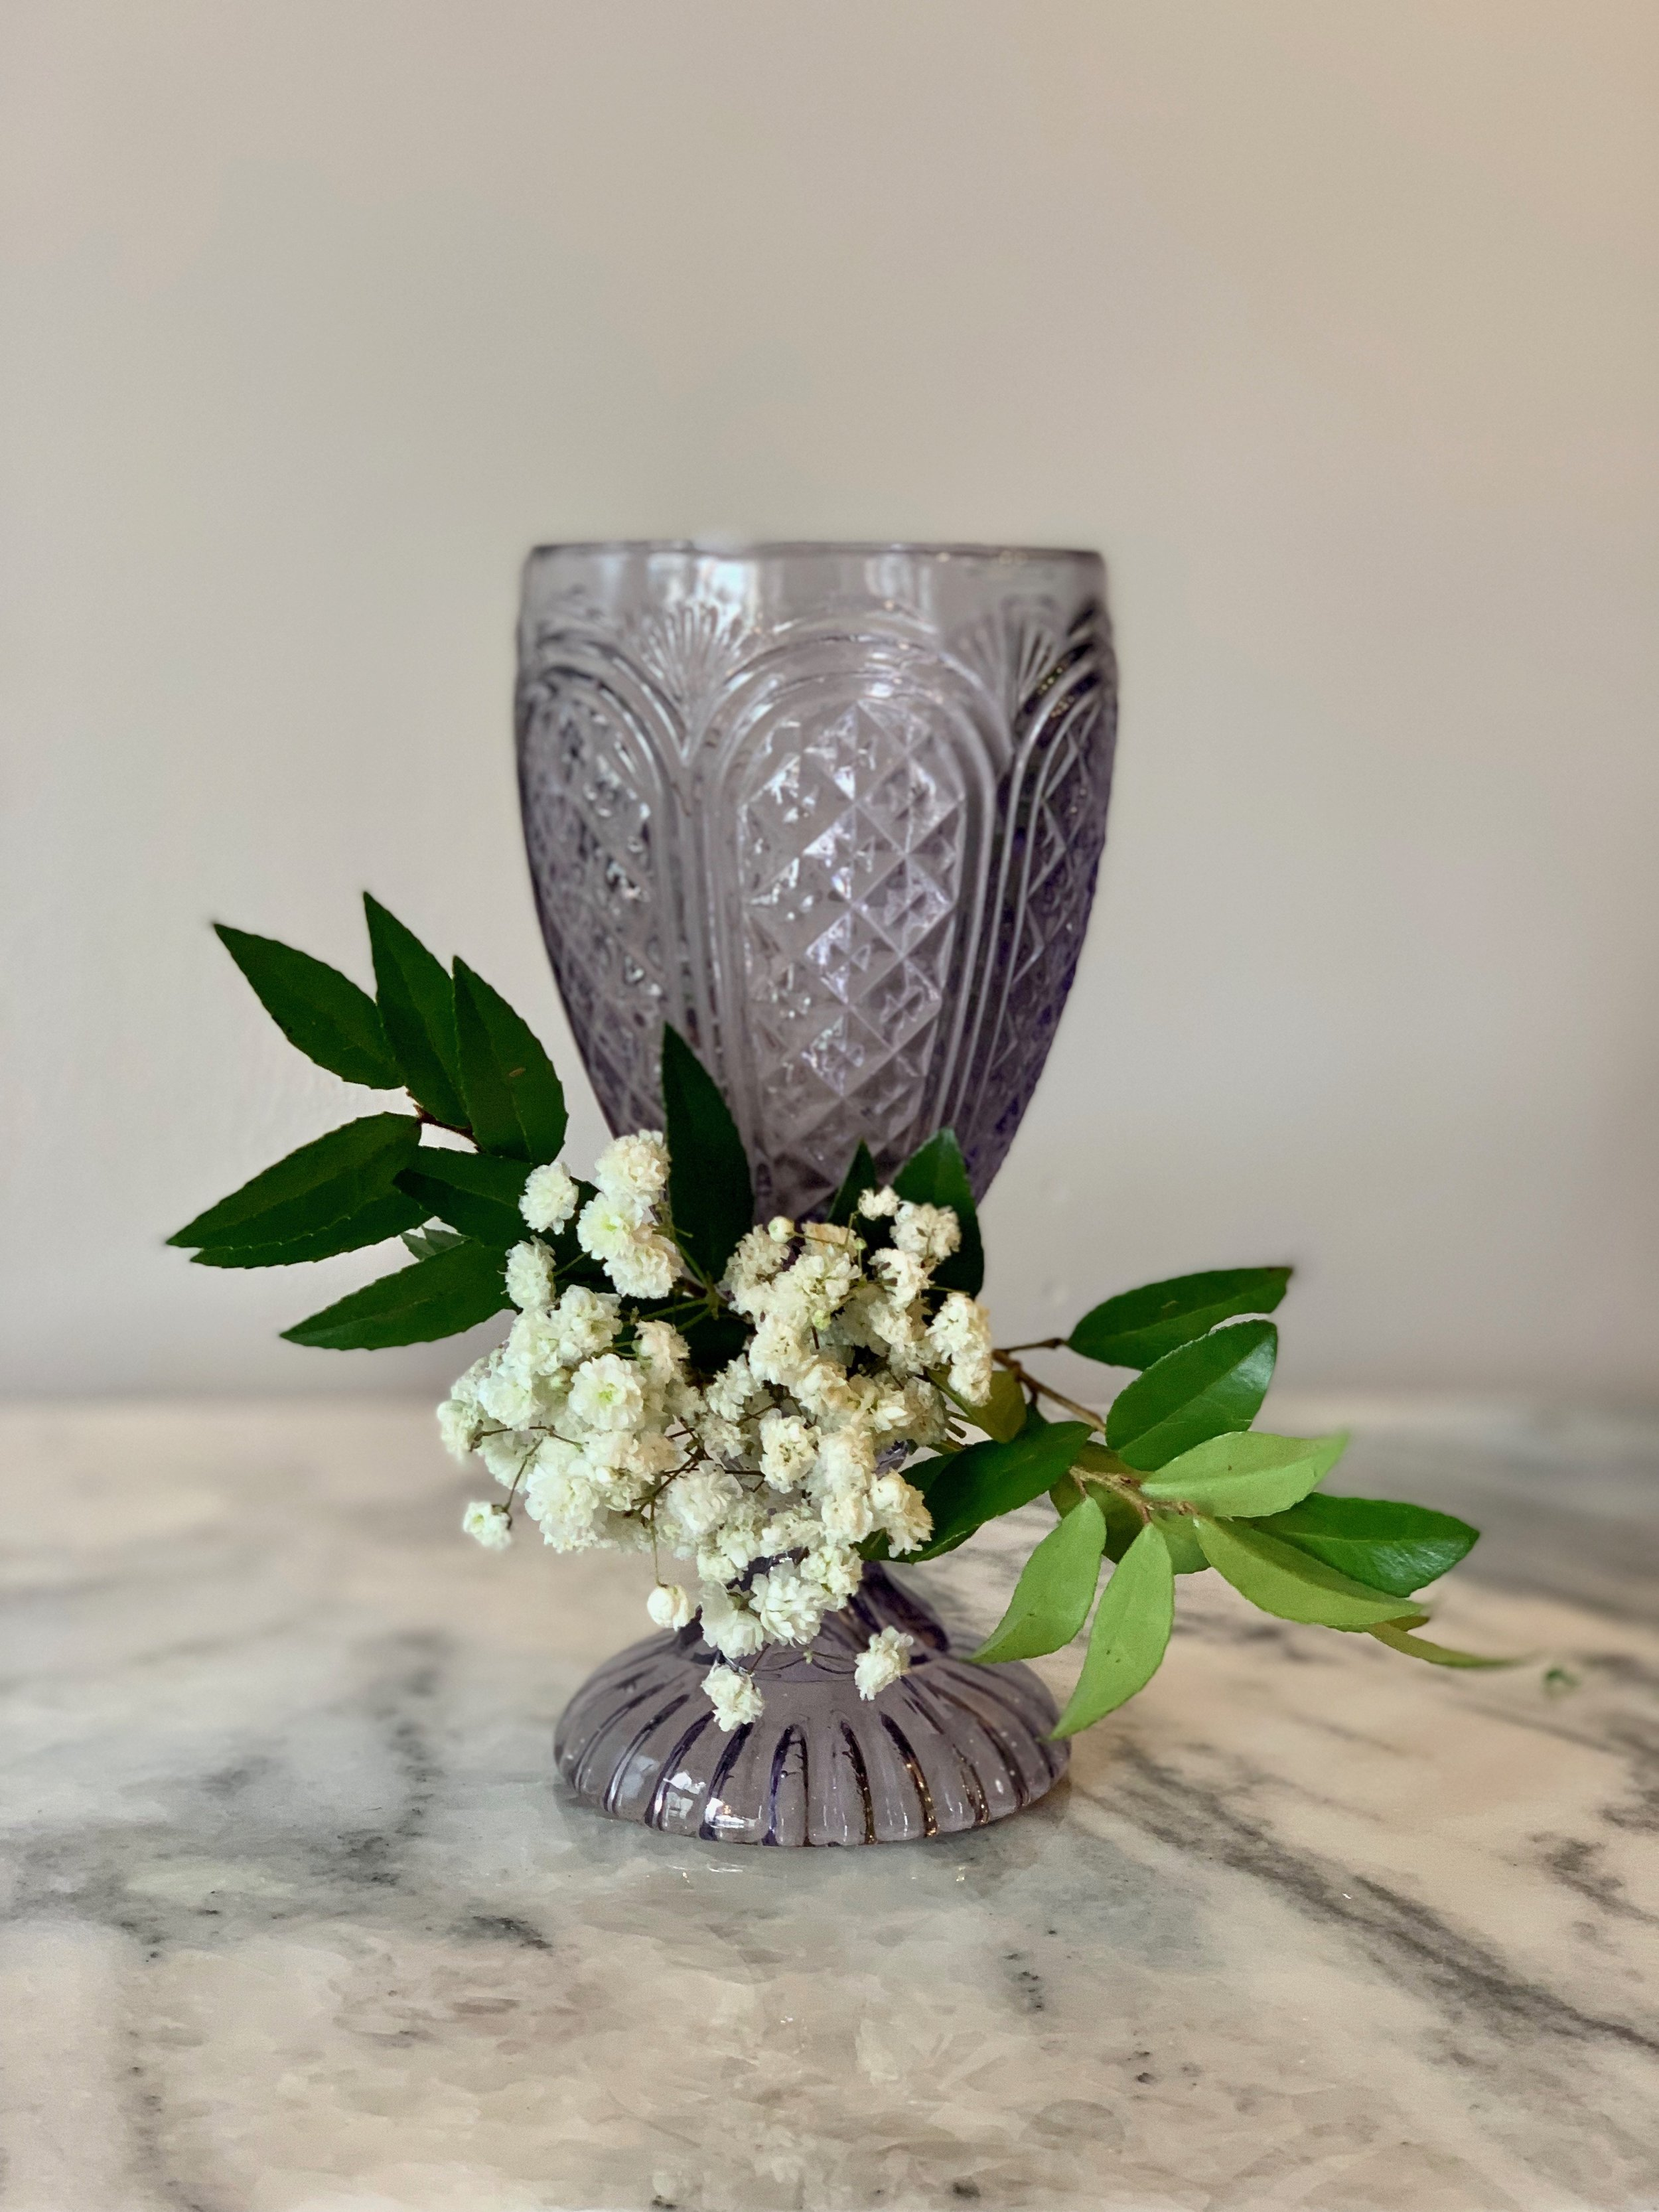 Wine glass with Babies Breath and greenery.